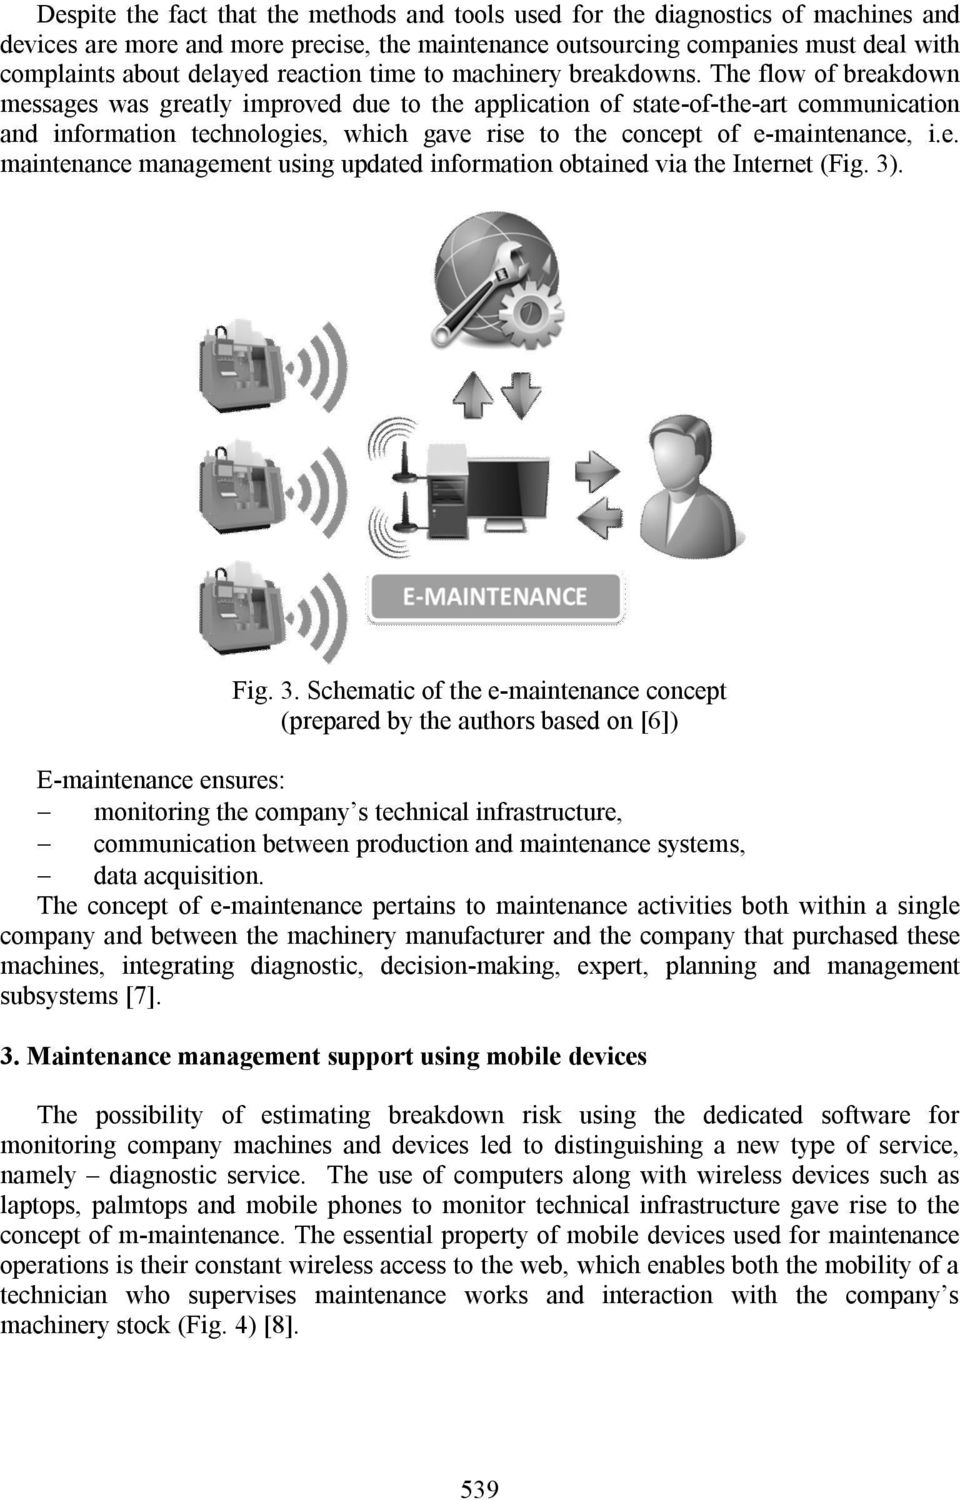 The flow of breakdown messages was greatly improved due to the application of state-of-the-art communication and information technologies, which gave rise to the concept of e-maintenance, i.e. maintenance management using updated information obtained via the Internet (Fig.